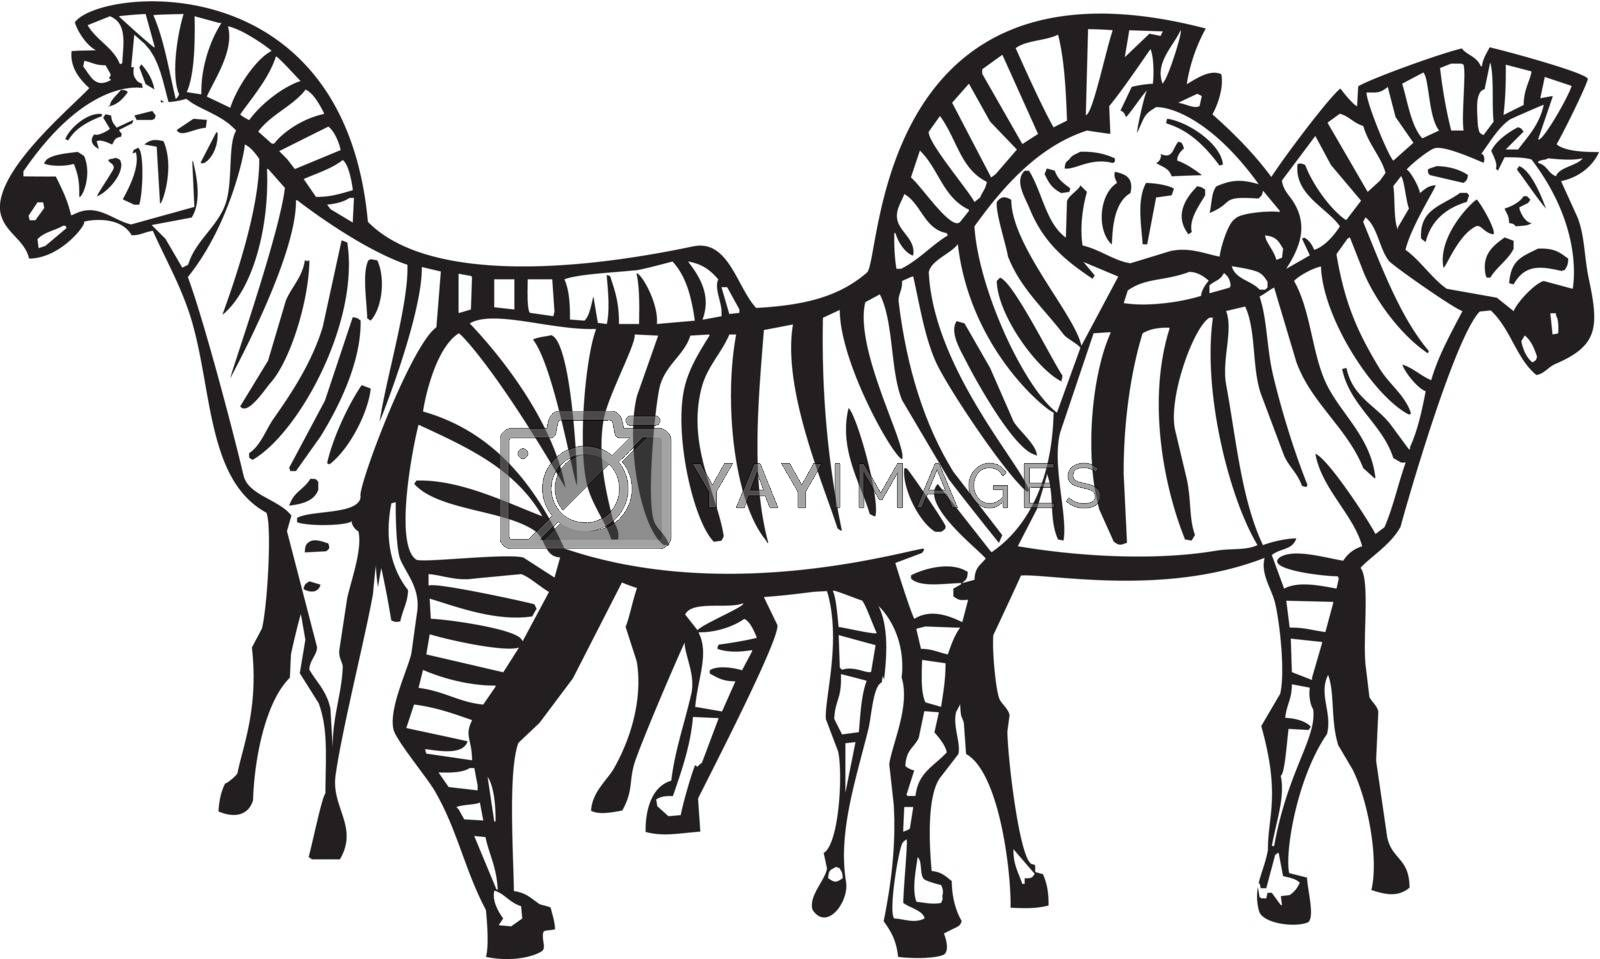 Three African Zebras grouped in a Herd